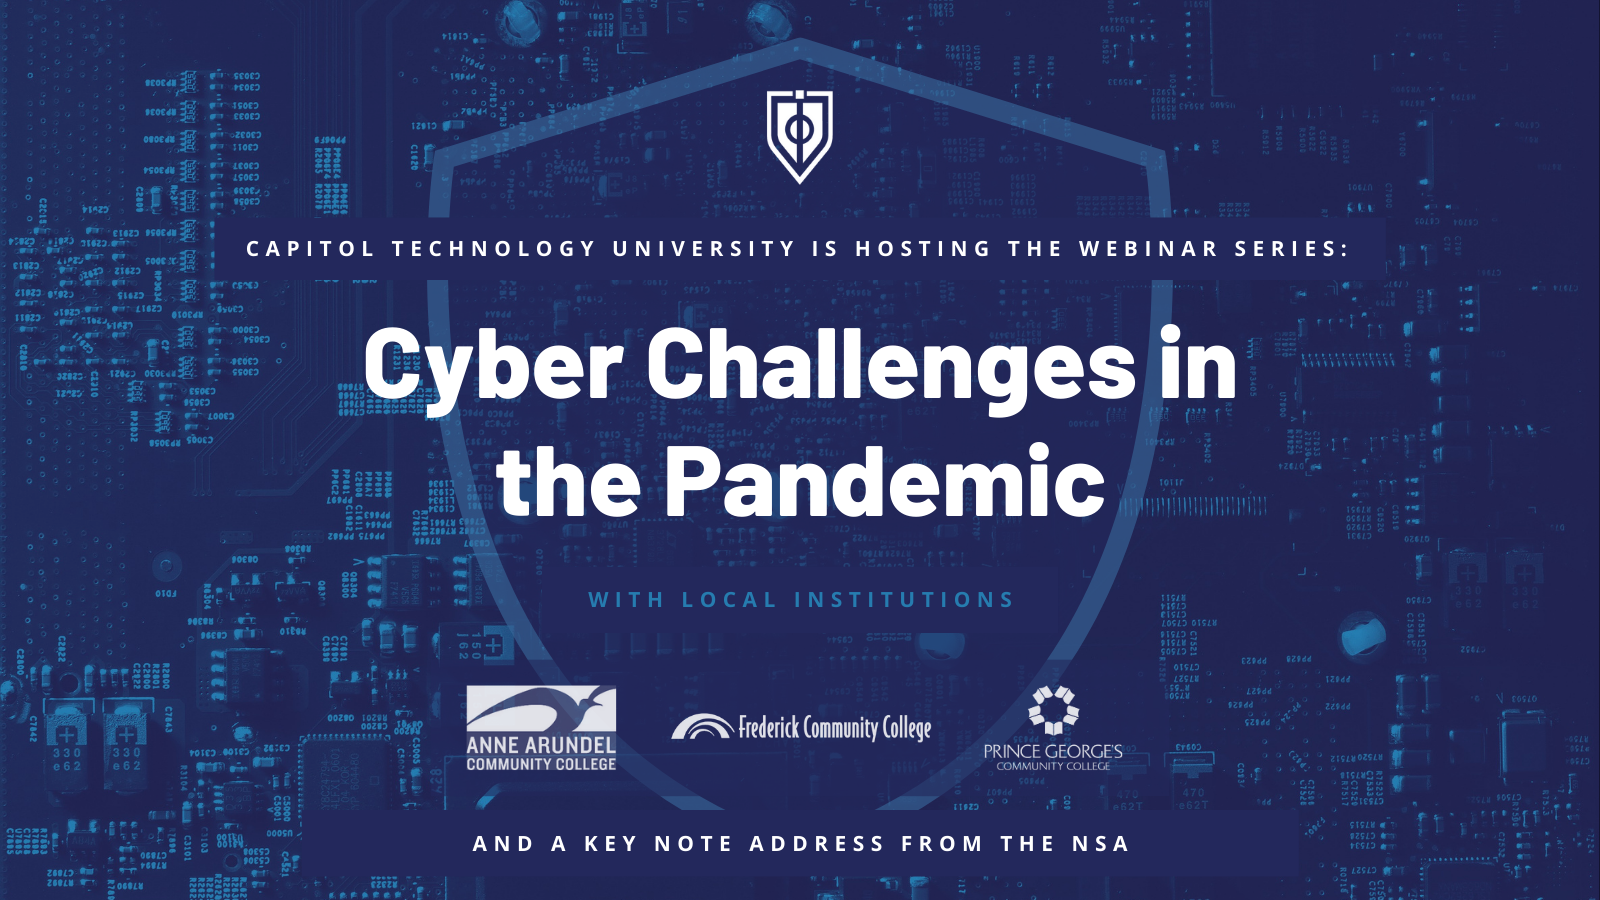 cybersecurity challenges in the pandemic